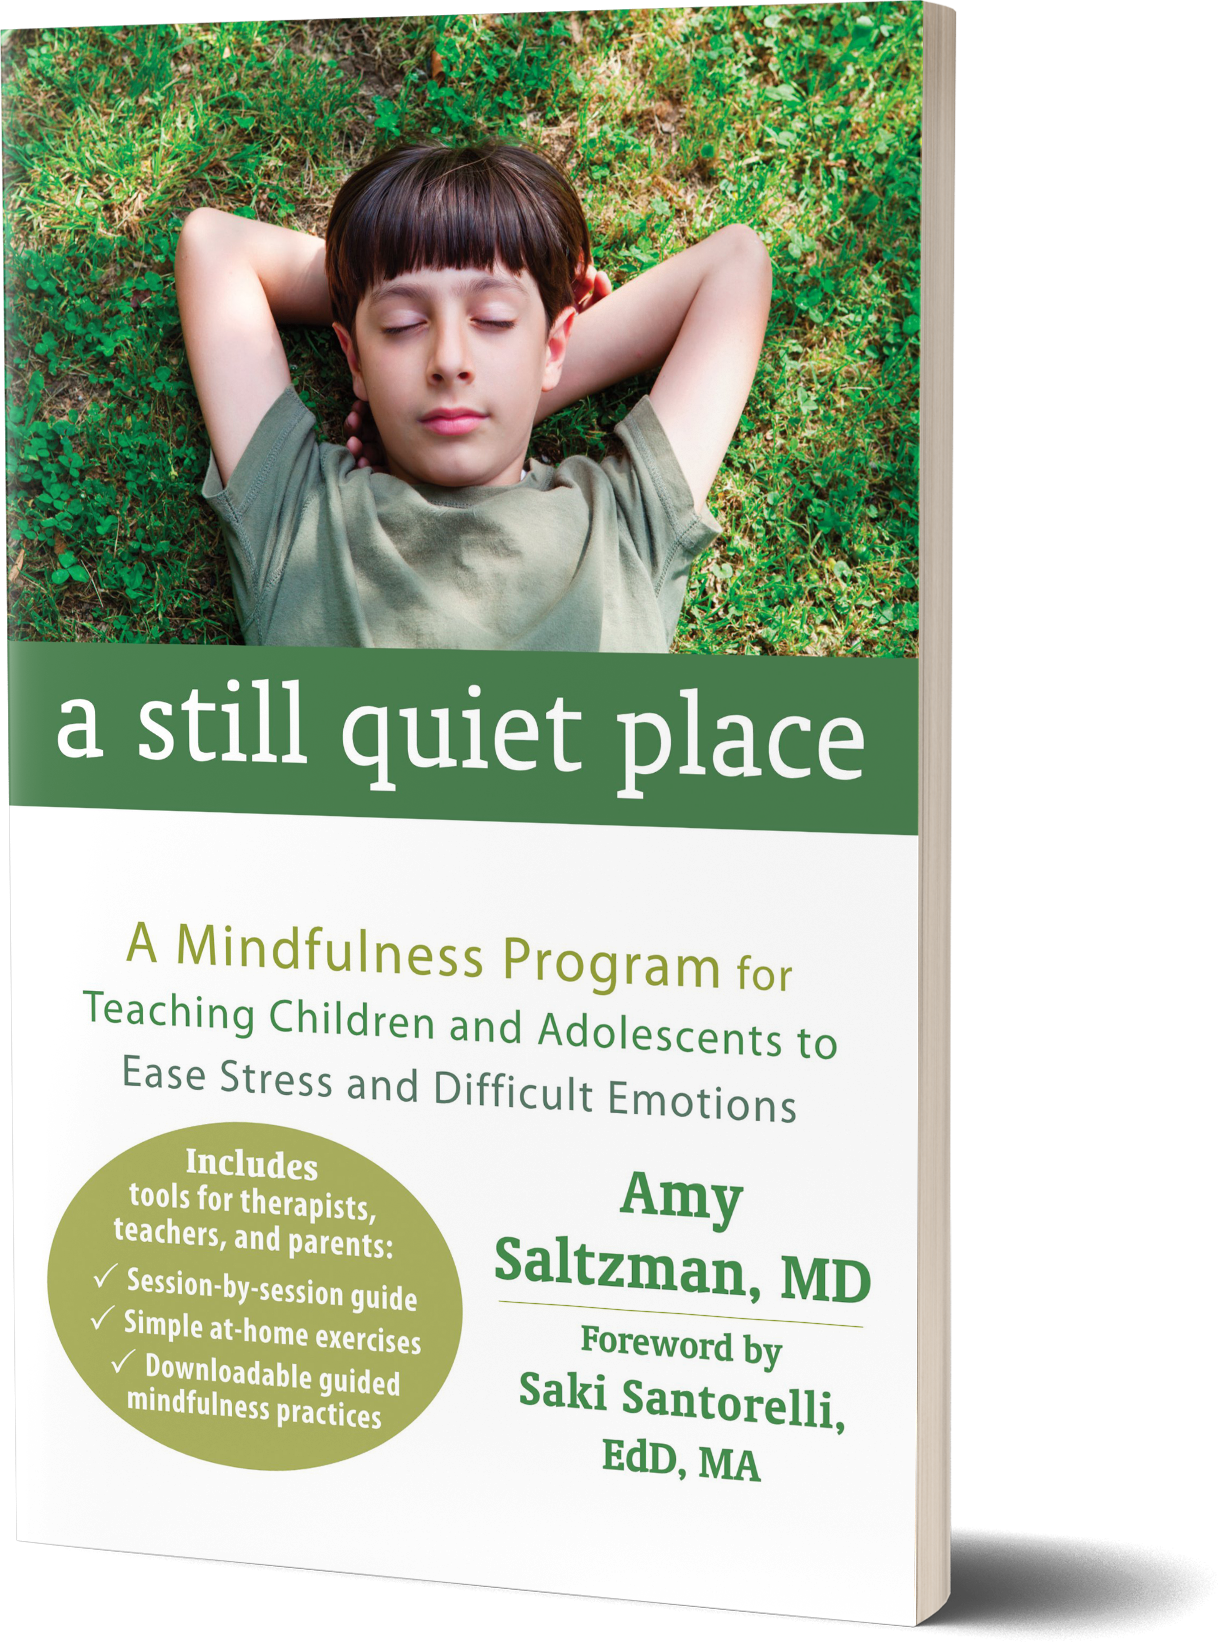 A Still Quiet Place- A Mindfulness Program for Teaching Children and Adolescents to Ease Stress and Difficult Emotions by Amy Saltzman, MD.png